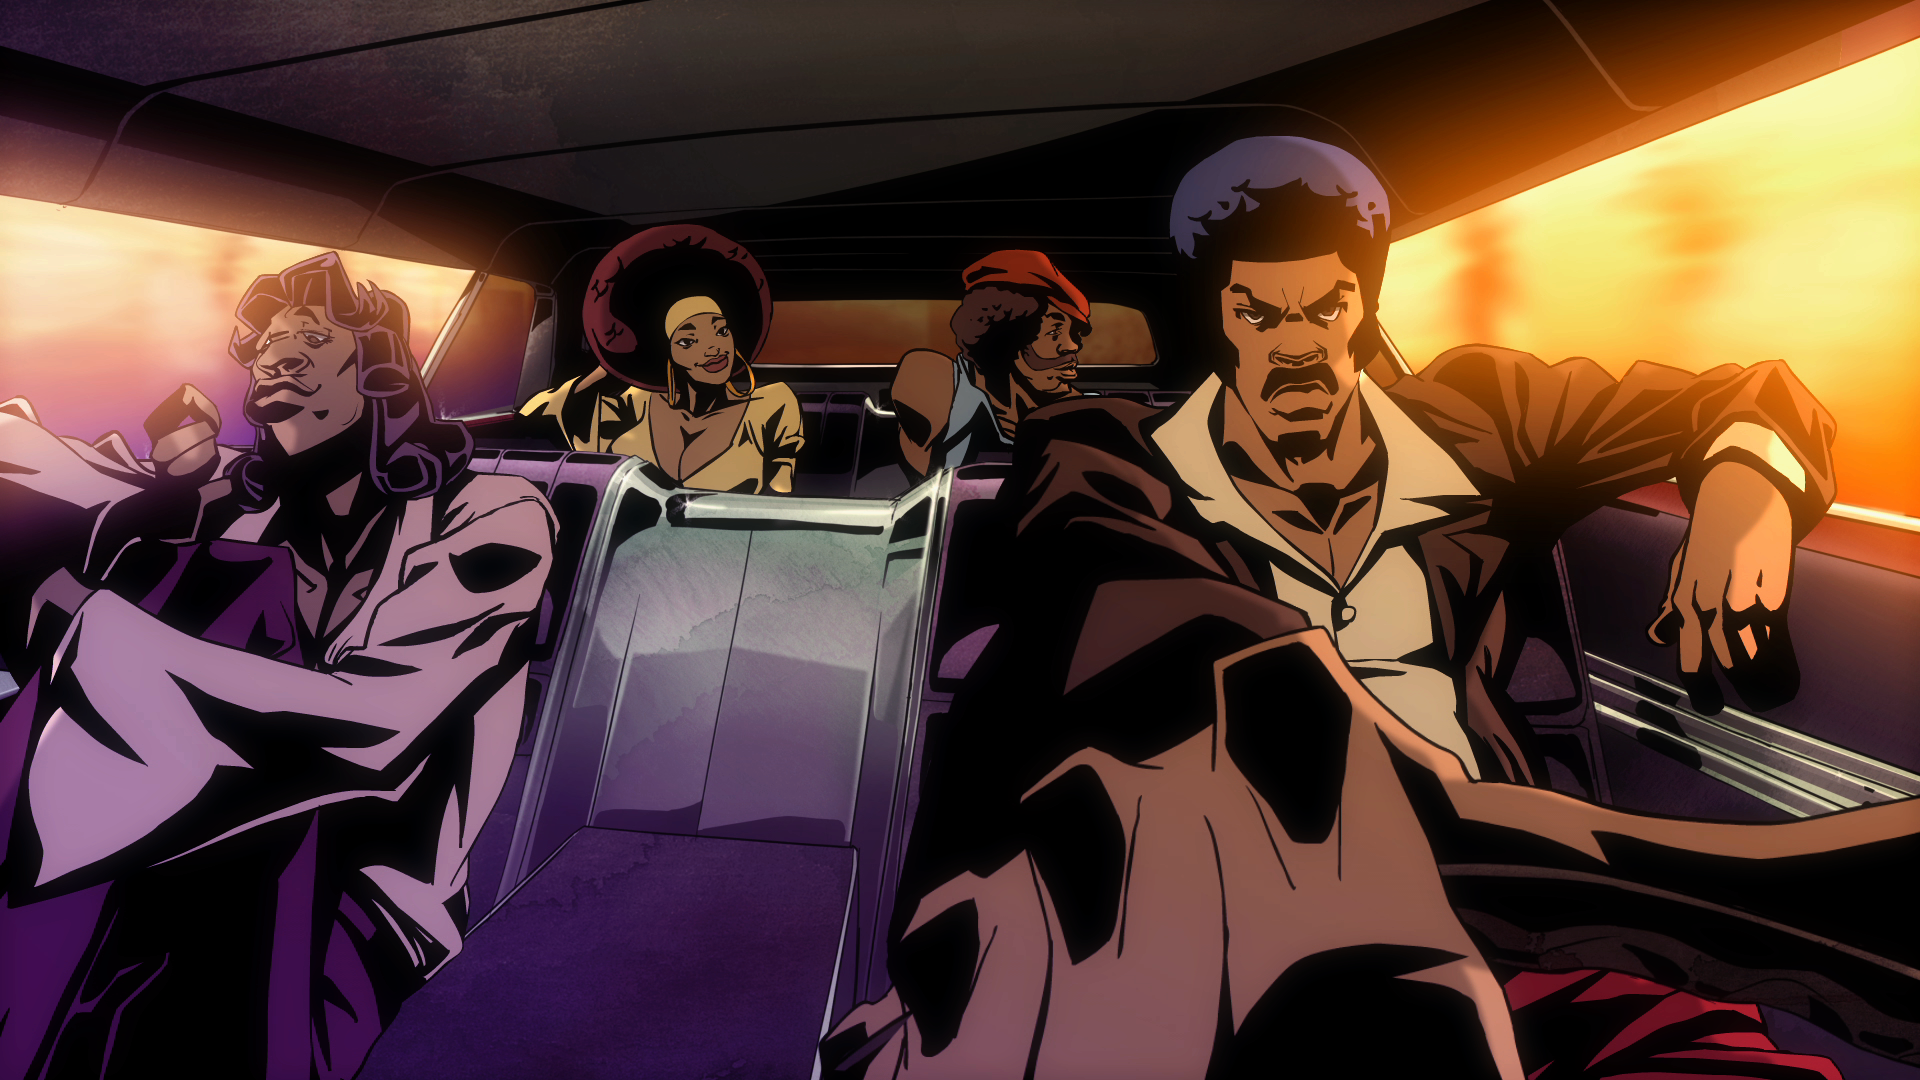 The Unaired Pilot Episode Of New Black Dynamite Animated Series Has Hit Internet Courtesy Adult Swim Who Will Be Premiering In